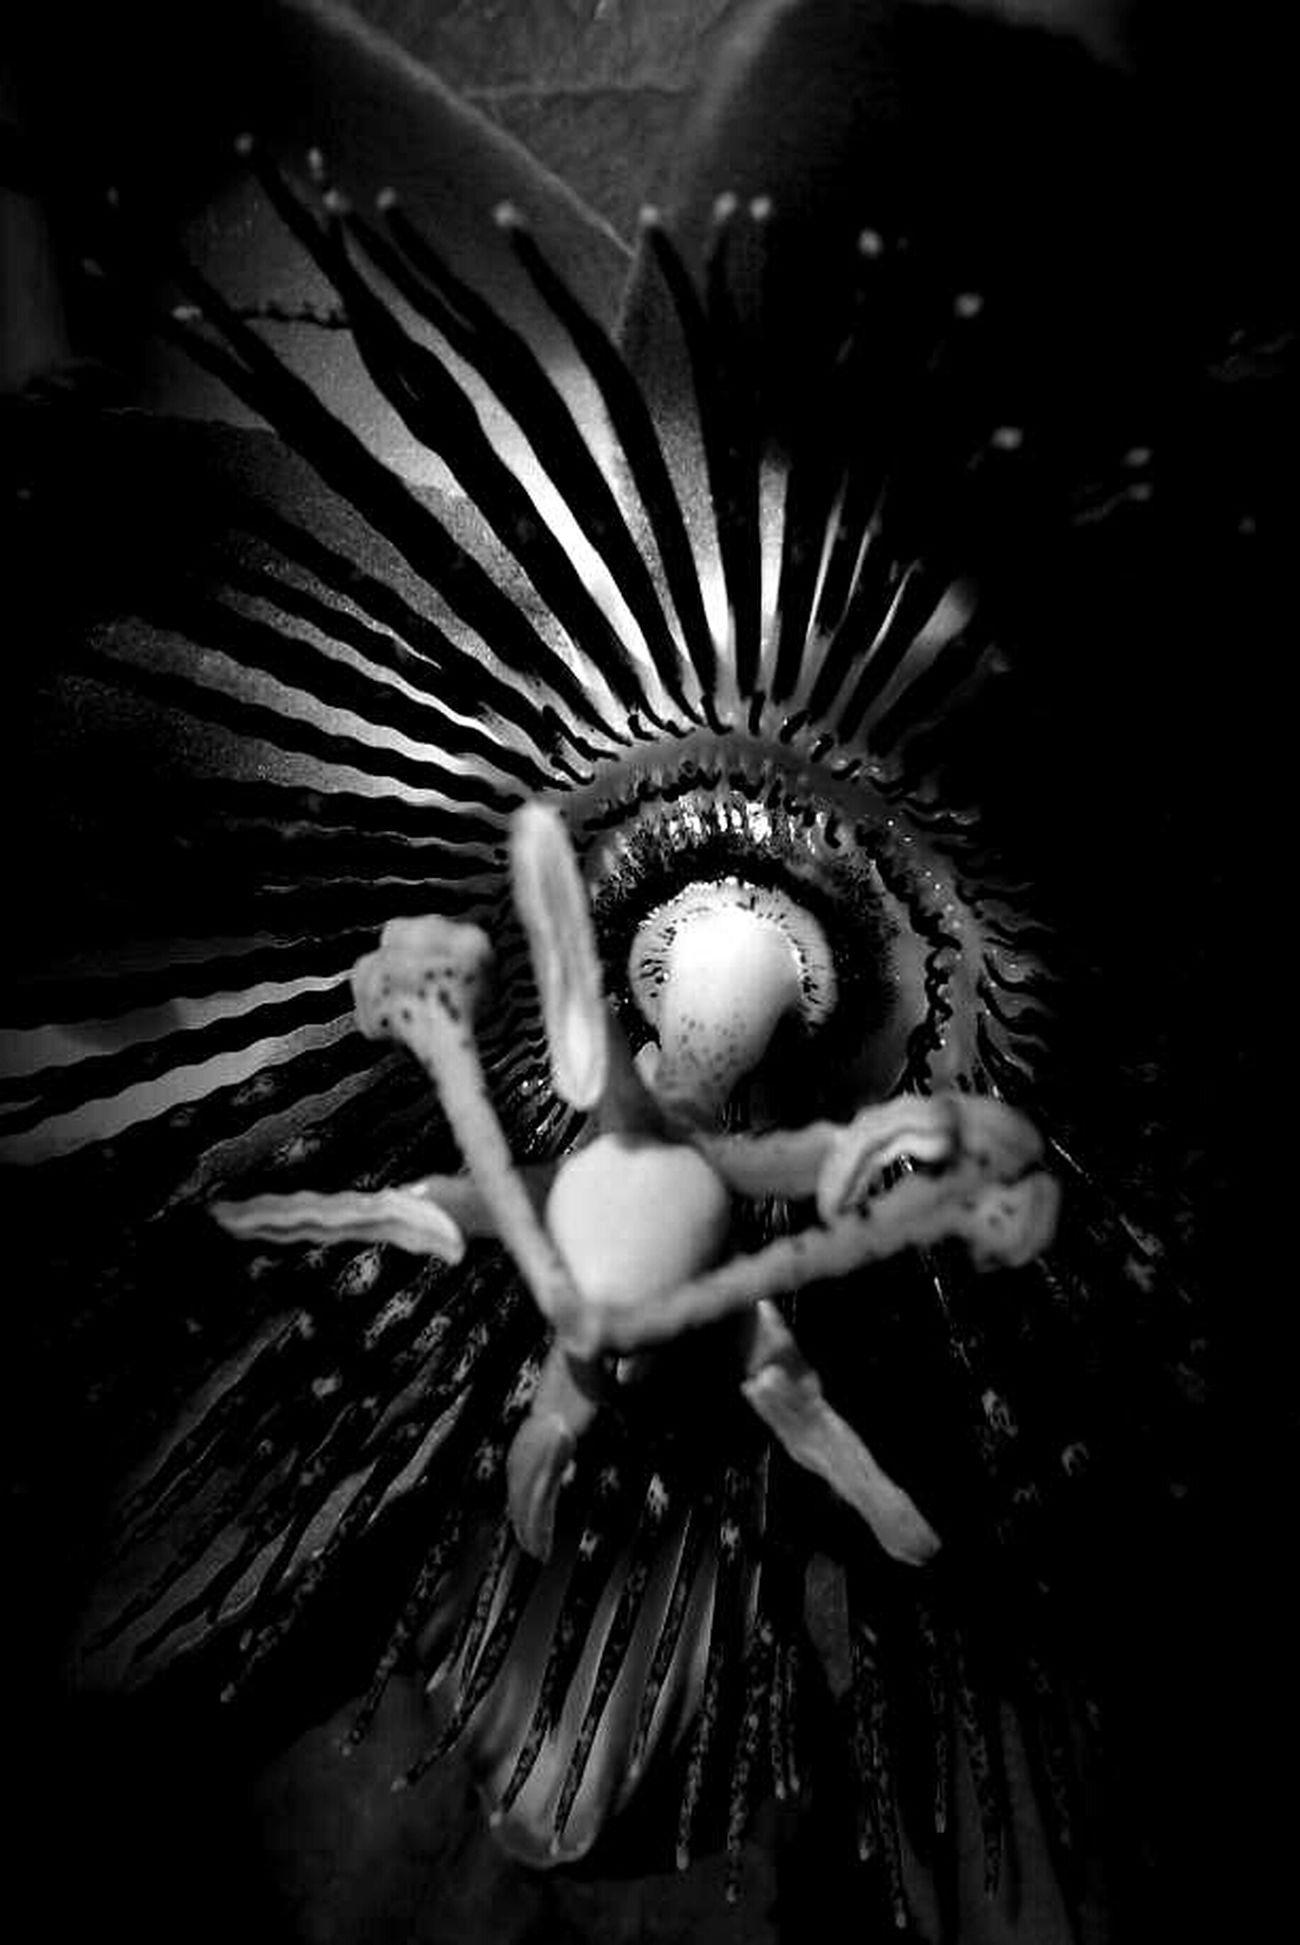 Black And White Blackandwhite Monochrome Darkness And Light Nature_ Collection  Flower Flowerporn Passiflora Eye4black&white  Black & White Black&white Bw_collection Light And Shadow The Devil's In The Detail Naturelovers